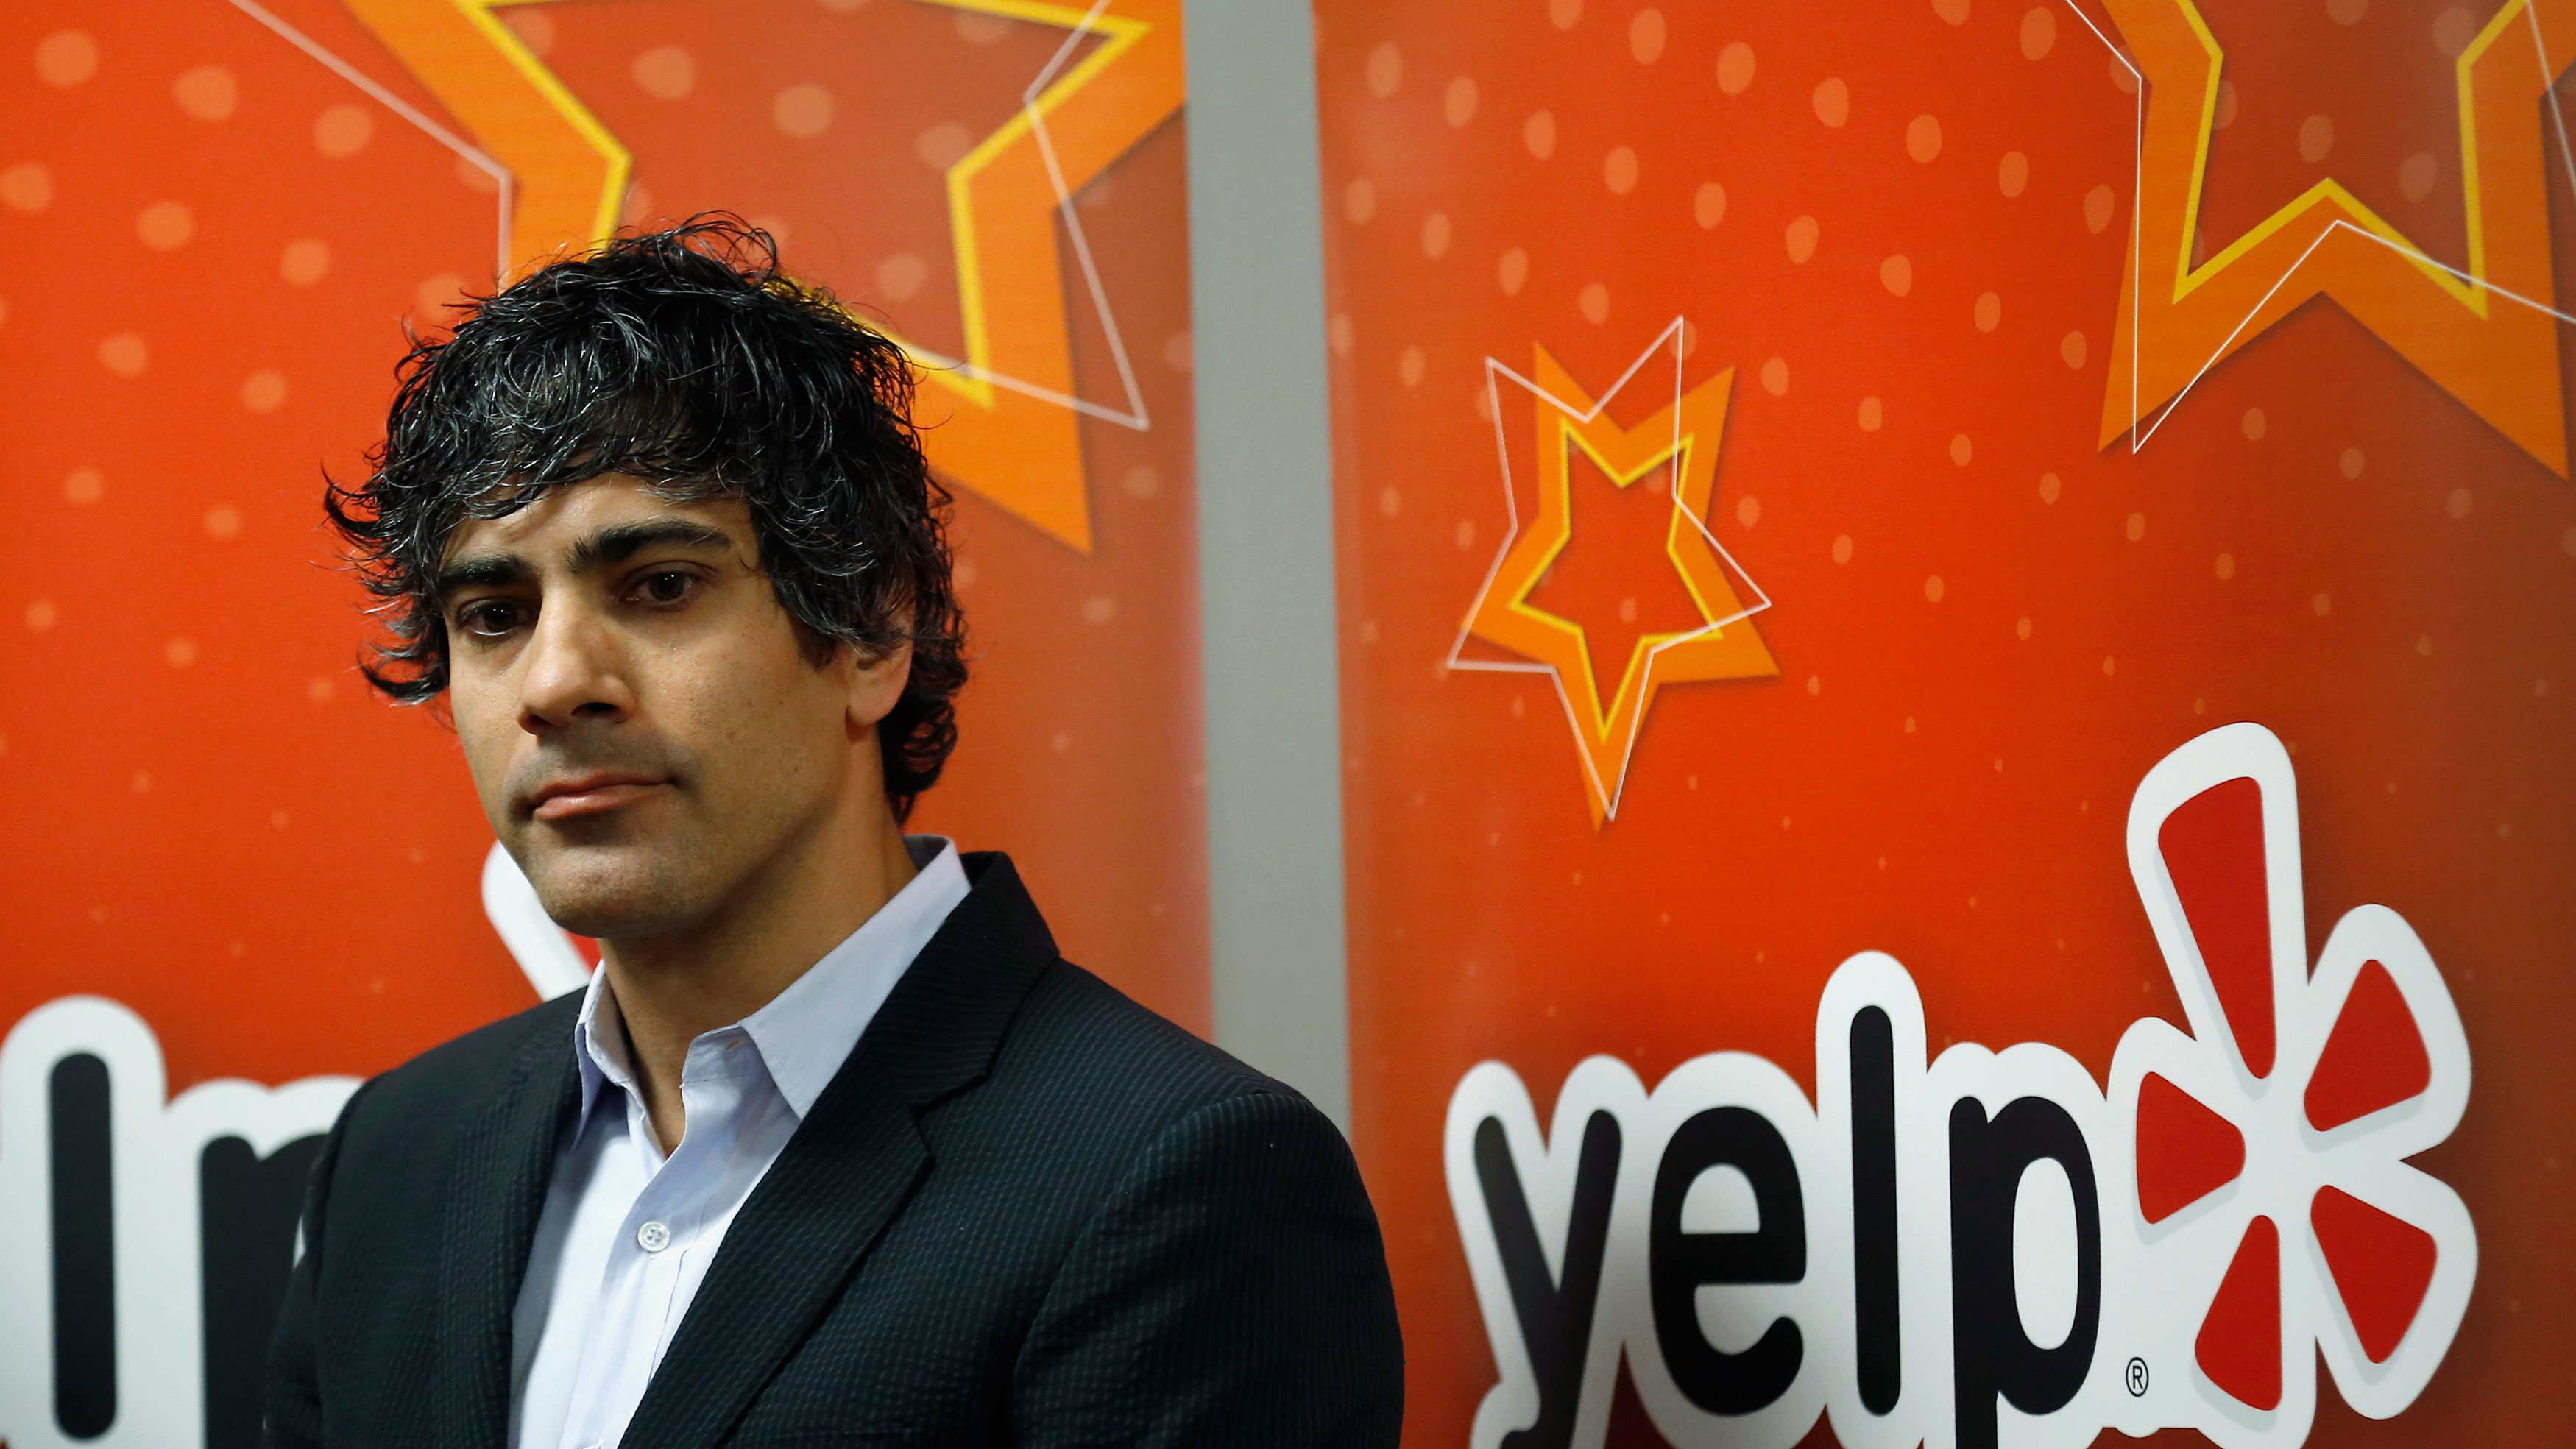 Yelp Inc. CEO and co-founder Jeremy Stoppelman is seen in the Yelp offices in Chicago, Illinois, March 5, 2015. REUTERS/Jim Young (UNITED STATES - Tags: BUSINESS SCIENCE TECHNOLOGY)